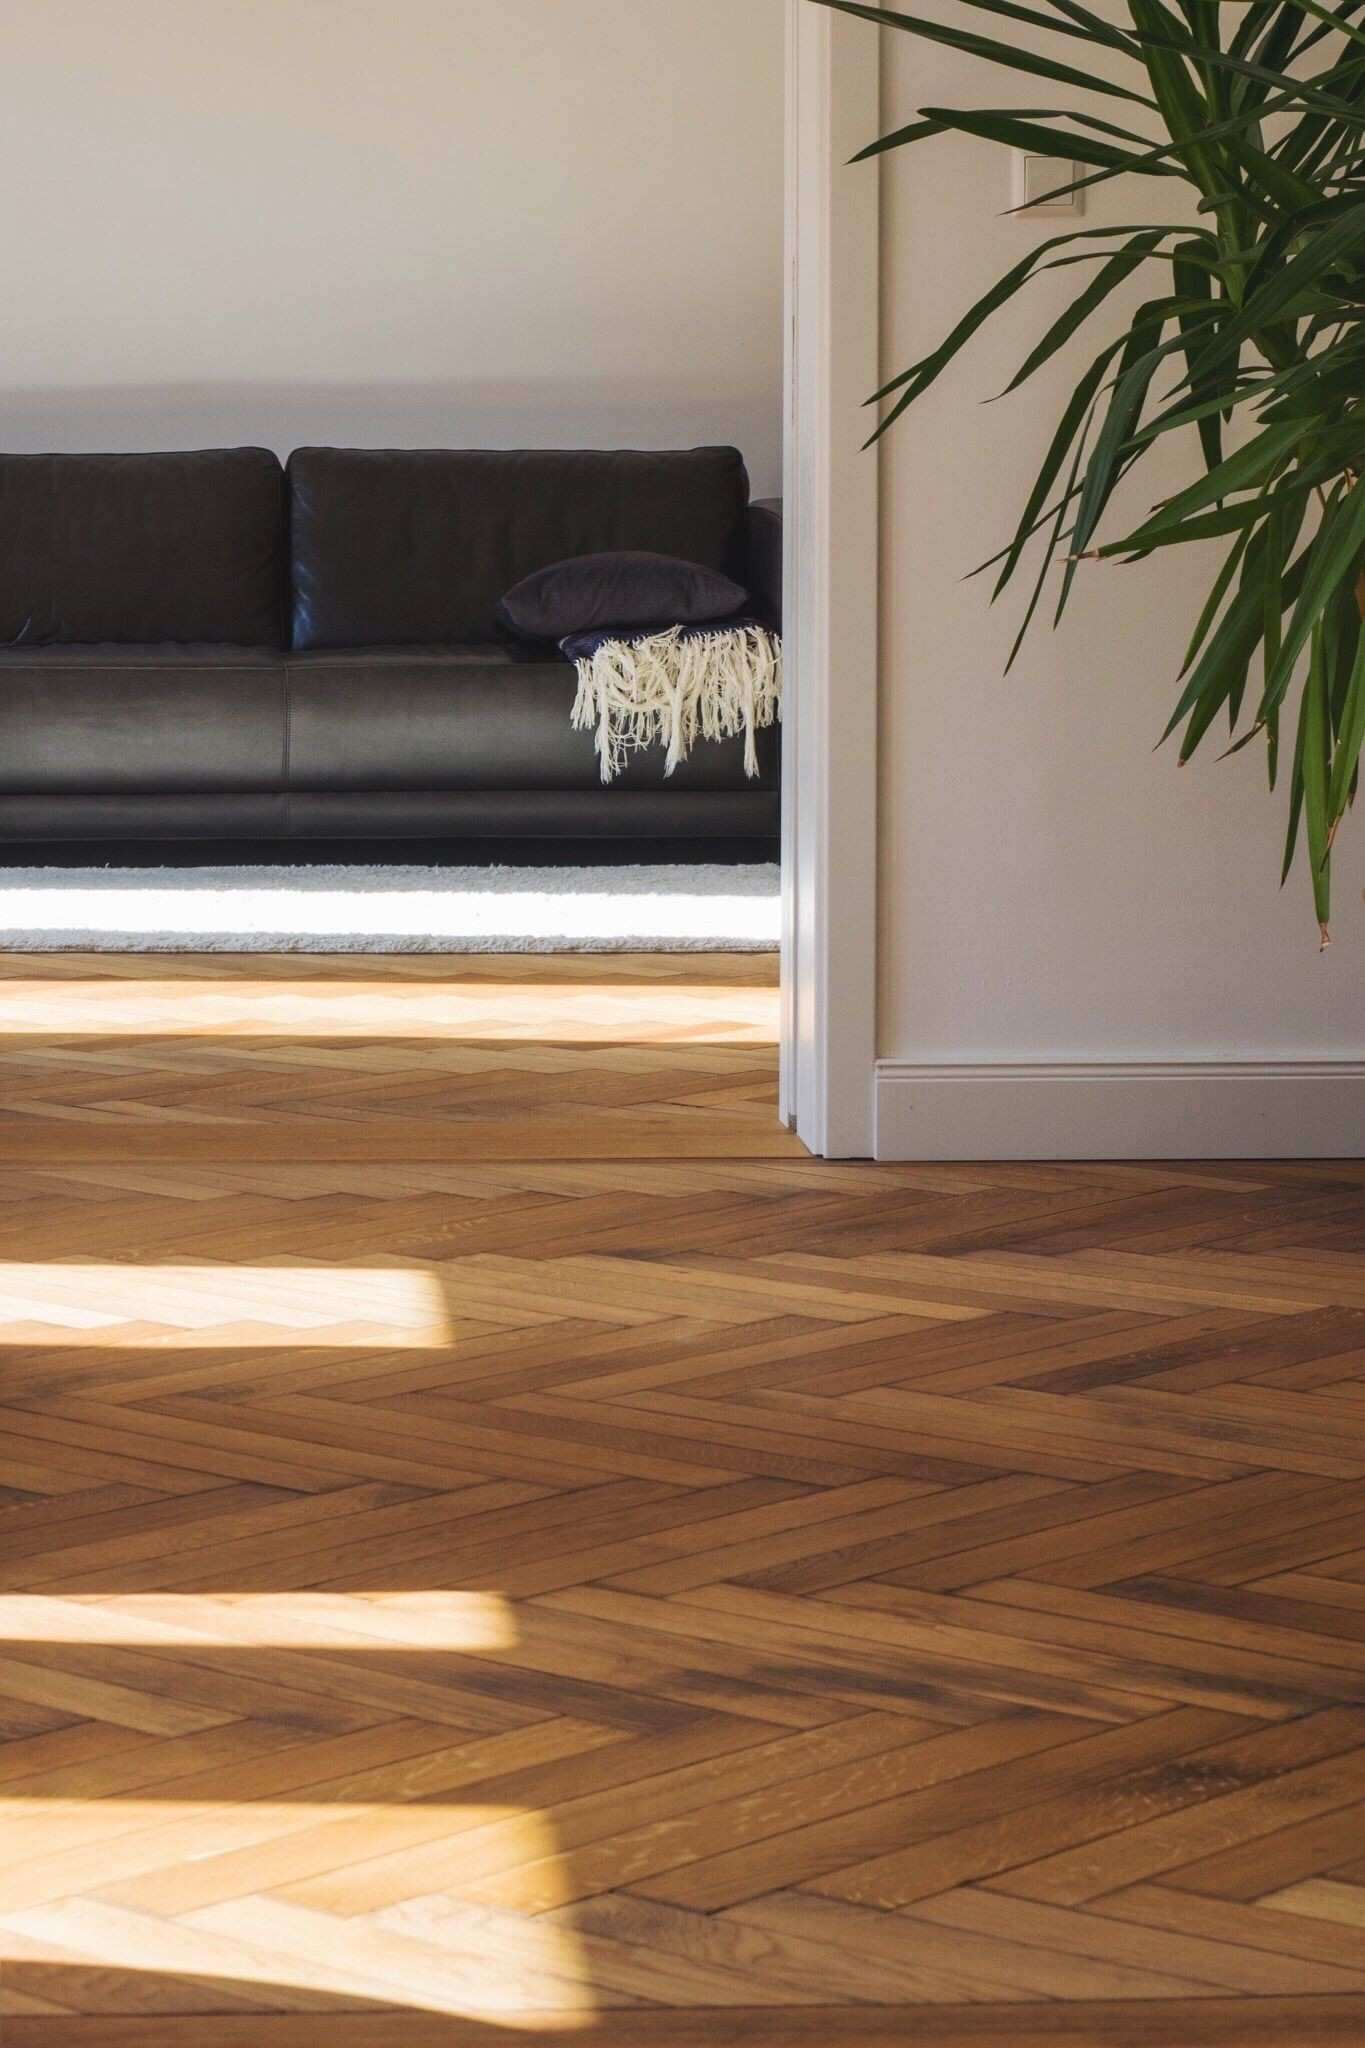 pictures of oak hardwood floors of decorating ideas for living rooms with hardwood floors elegant home intended for decorating ideas for living rooms with hardwood floors beautiful laminate flooring in a multi colored living